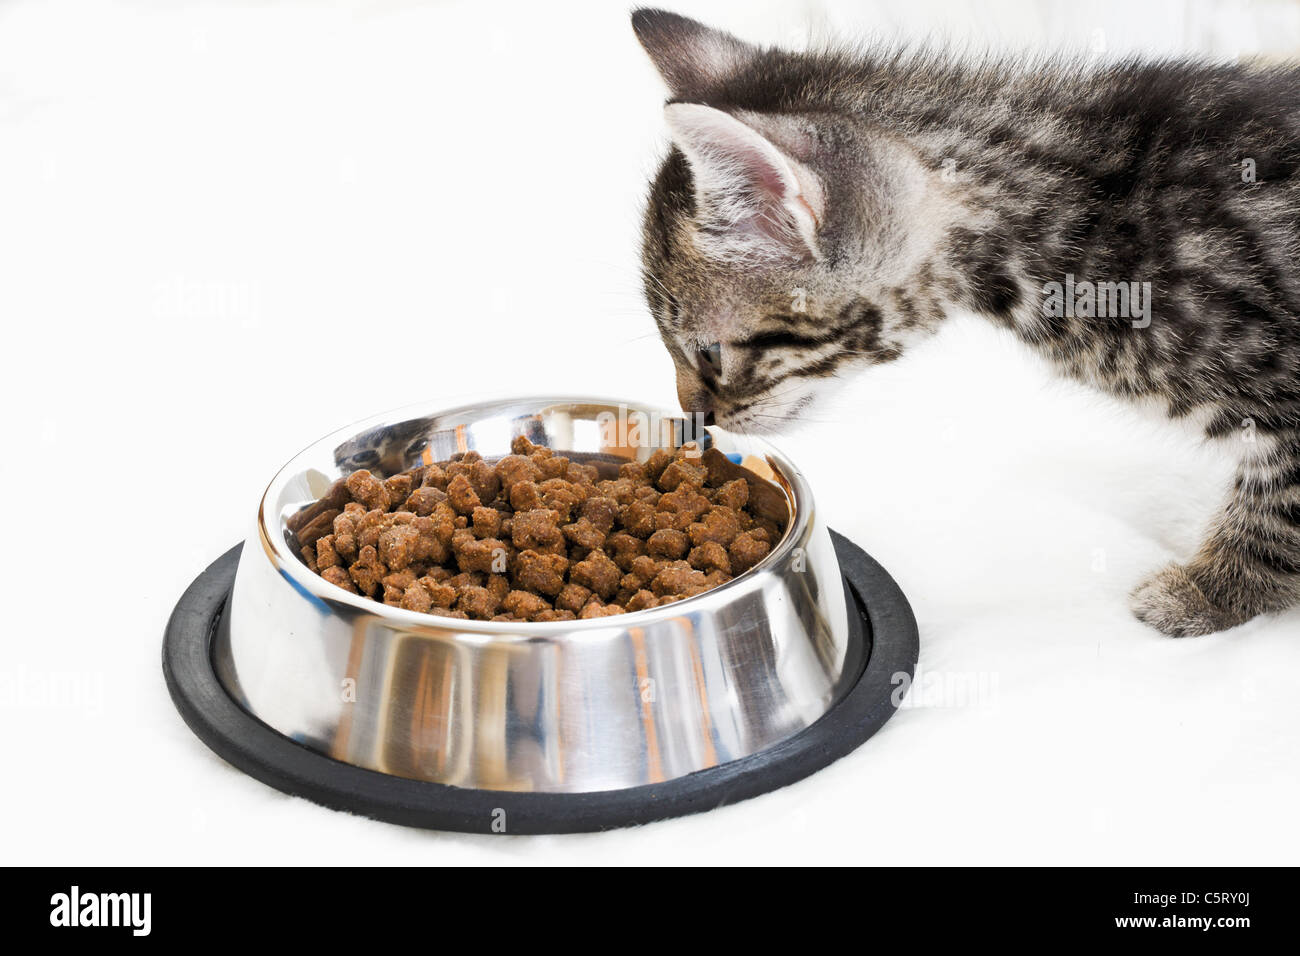 Domestic cat, kitten at feeding dish, side view - Stock Image